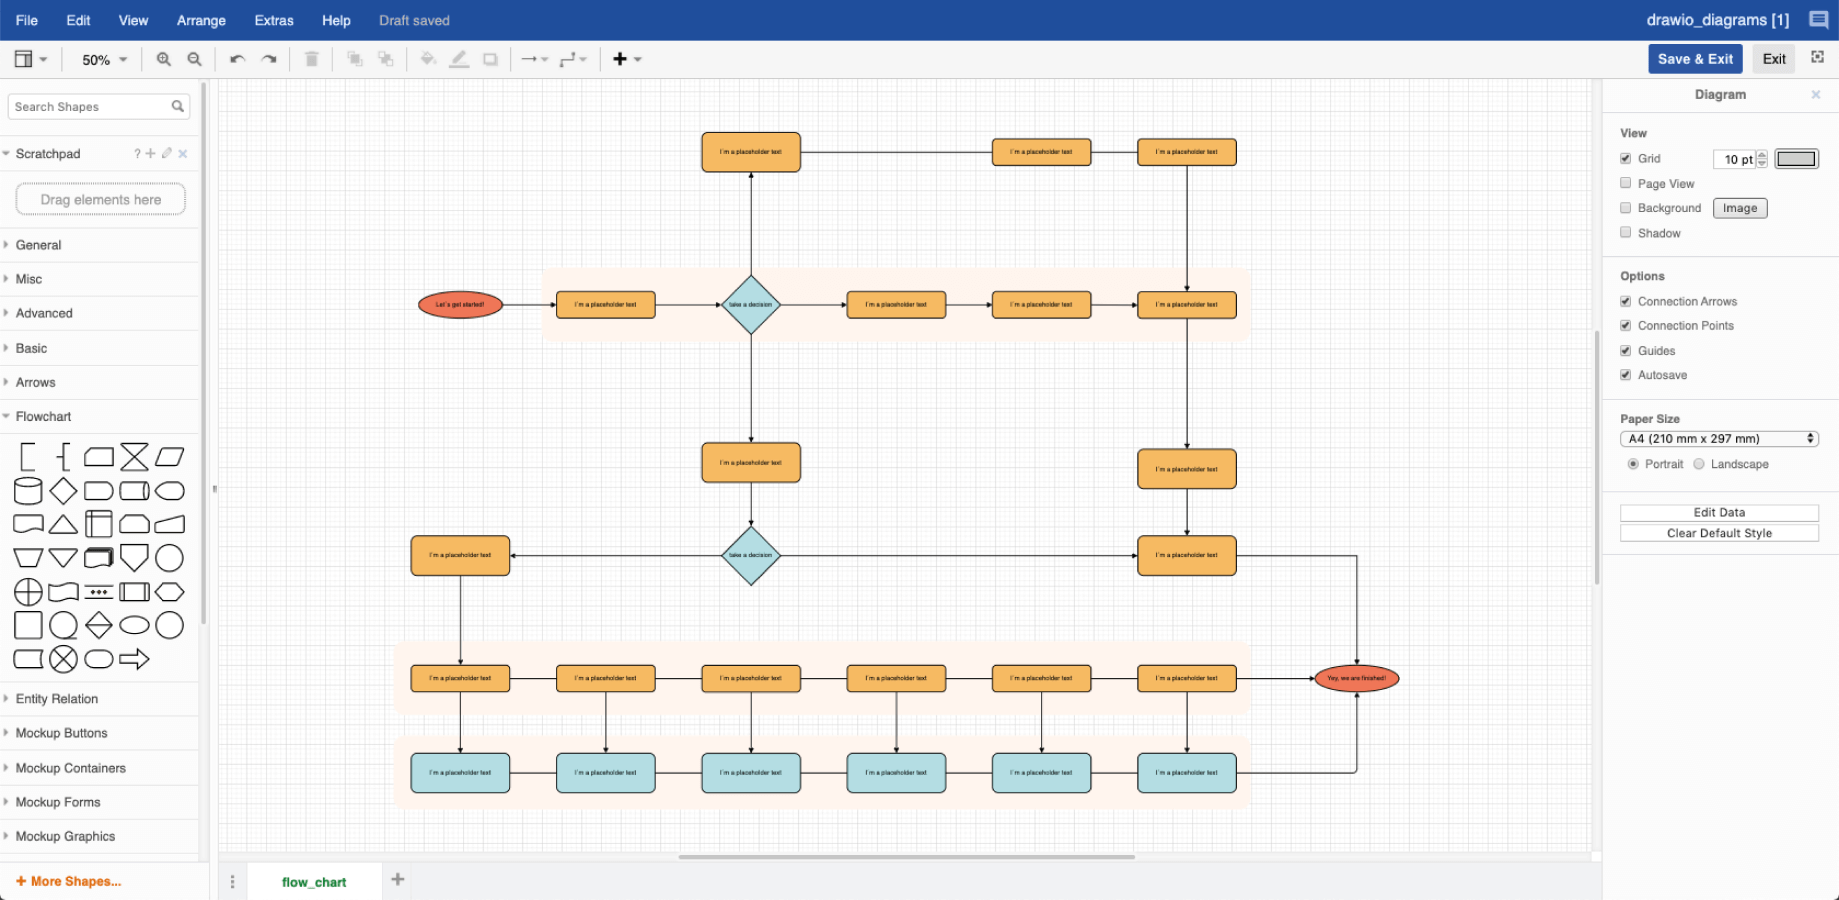 Sample process diagram courtesy of Draw.io